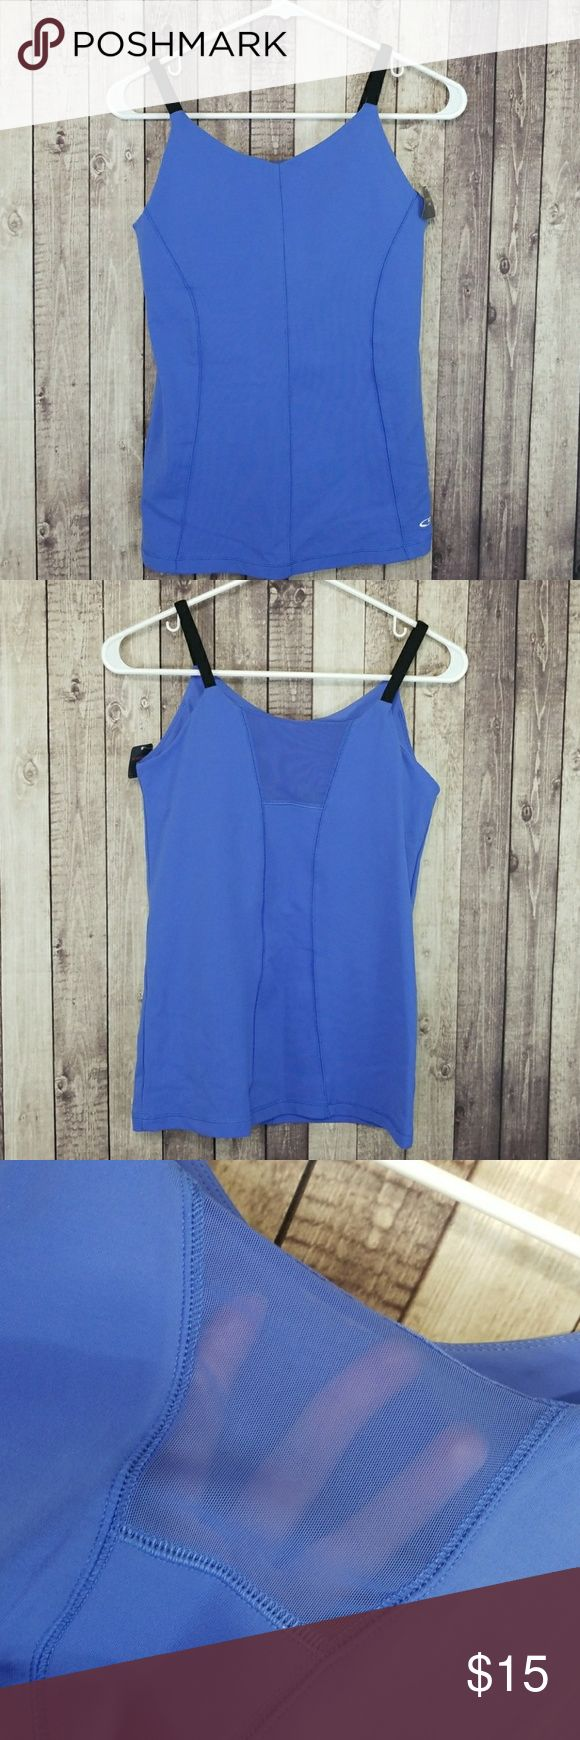 """C9 by Champion workout tank Brand new with removable cup tag attached. C9 by Champion purple/blue-ish workout tank with bra and removable cups. Nylon and spandex blend. Lay flat measurements: approximately 15"""" pit to pit, 24"""" long. Champion Tops Tank Tops"""